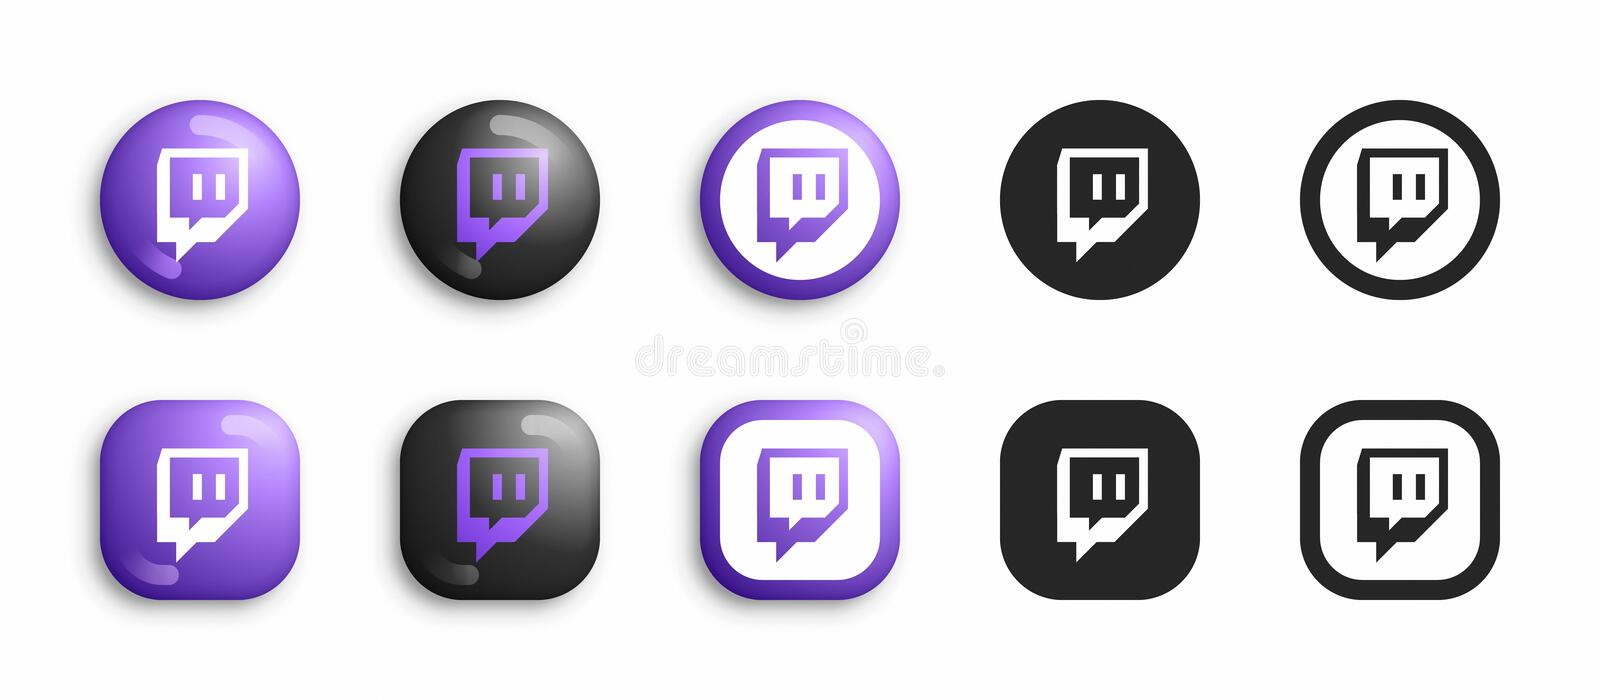 Twitch Icon Stock Illustrations 203 Twitch Icon Stock Illustrations Vectors Clipart Dreamstime